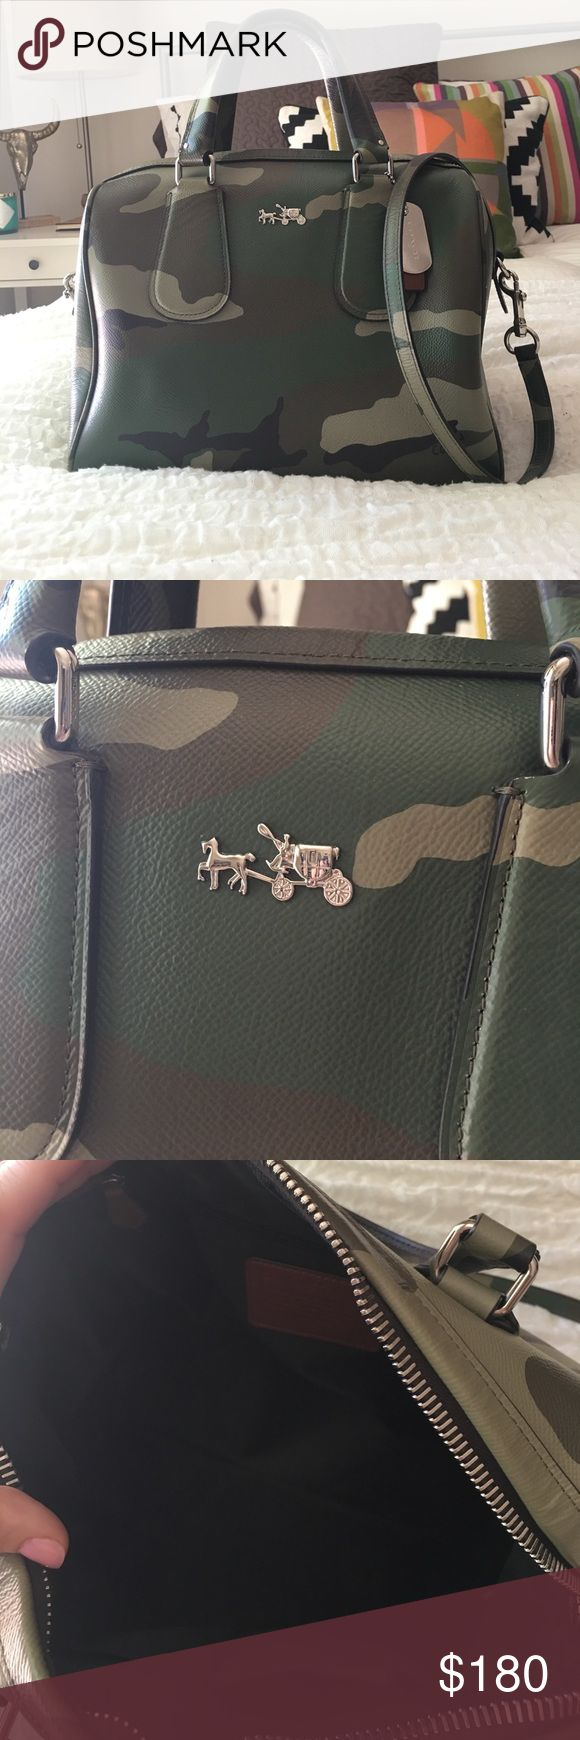 Coach Camo Surrey Satchel In EUC shows minor wear on corners. See pics. Ask questions. Absolutely no low ball offers. Limited edition bag Coach Bags Satchels